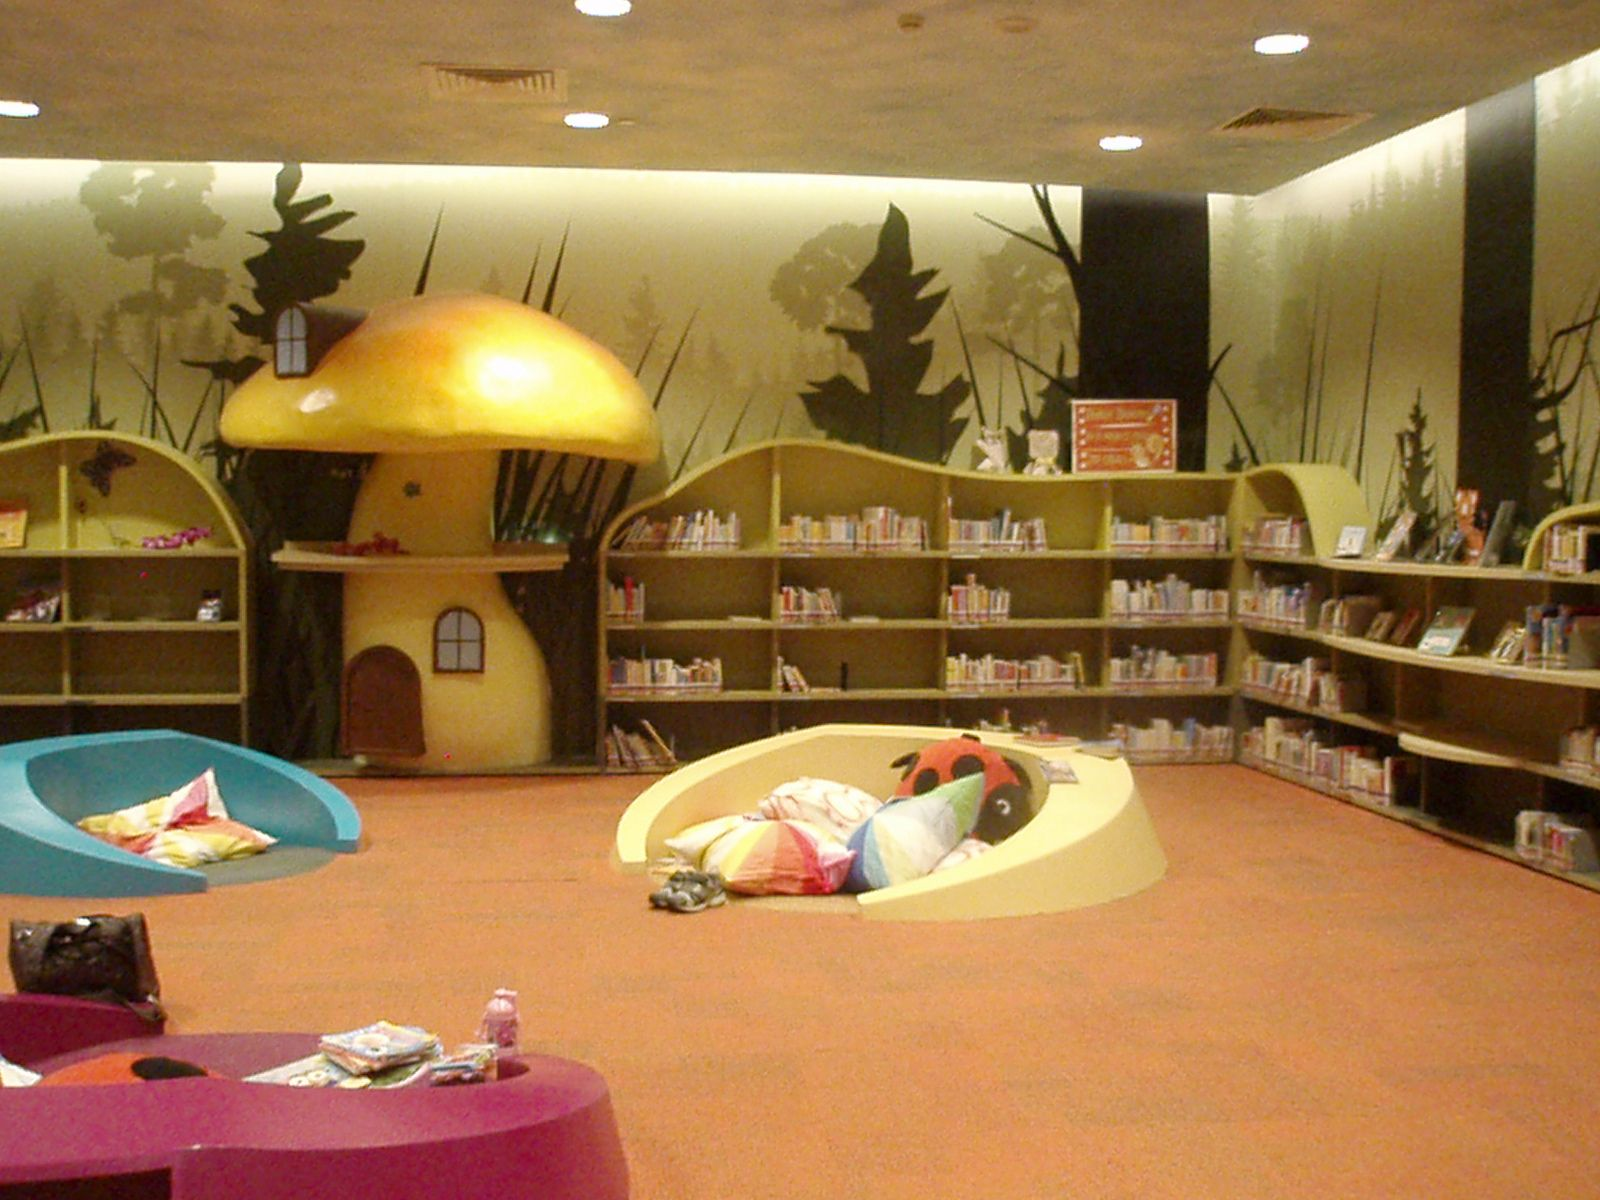 Children S And Kids Room Ideas Designs Inspiration: Children's Library, Central Public Library, Singapore In